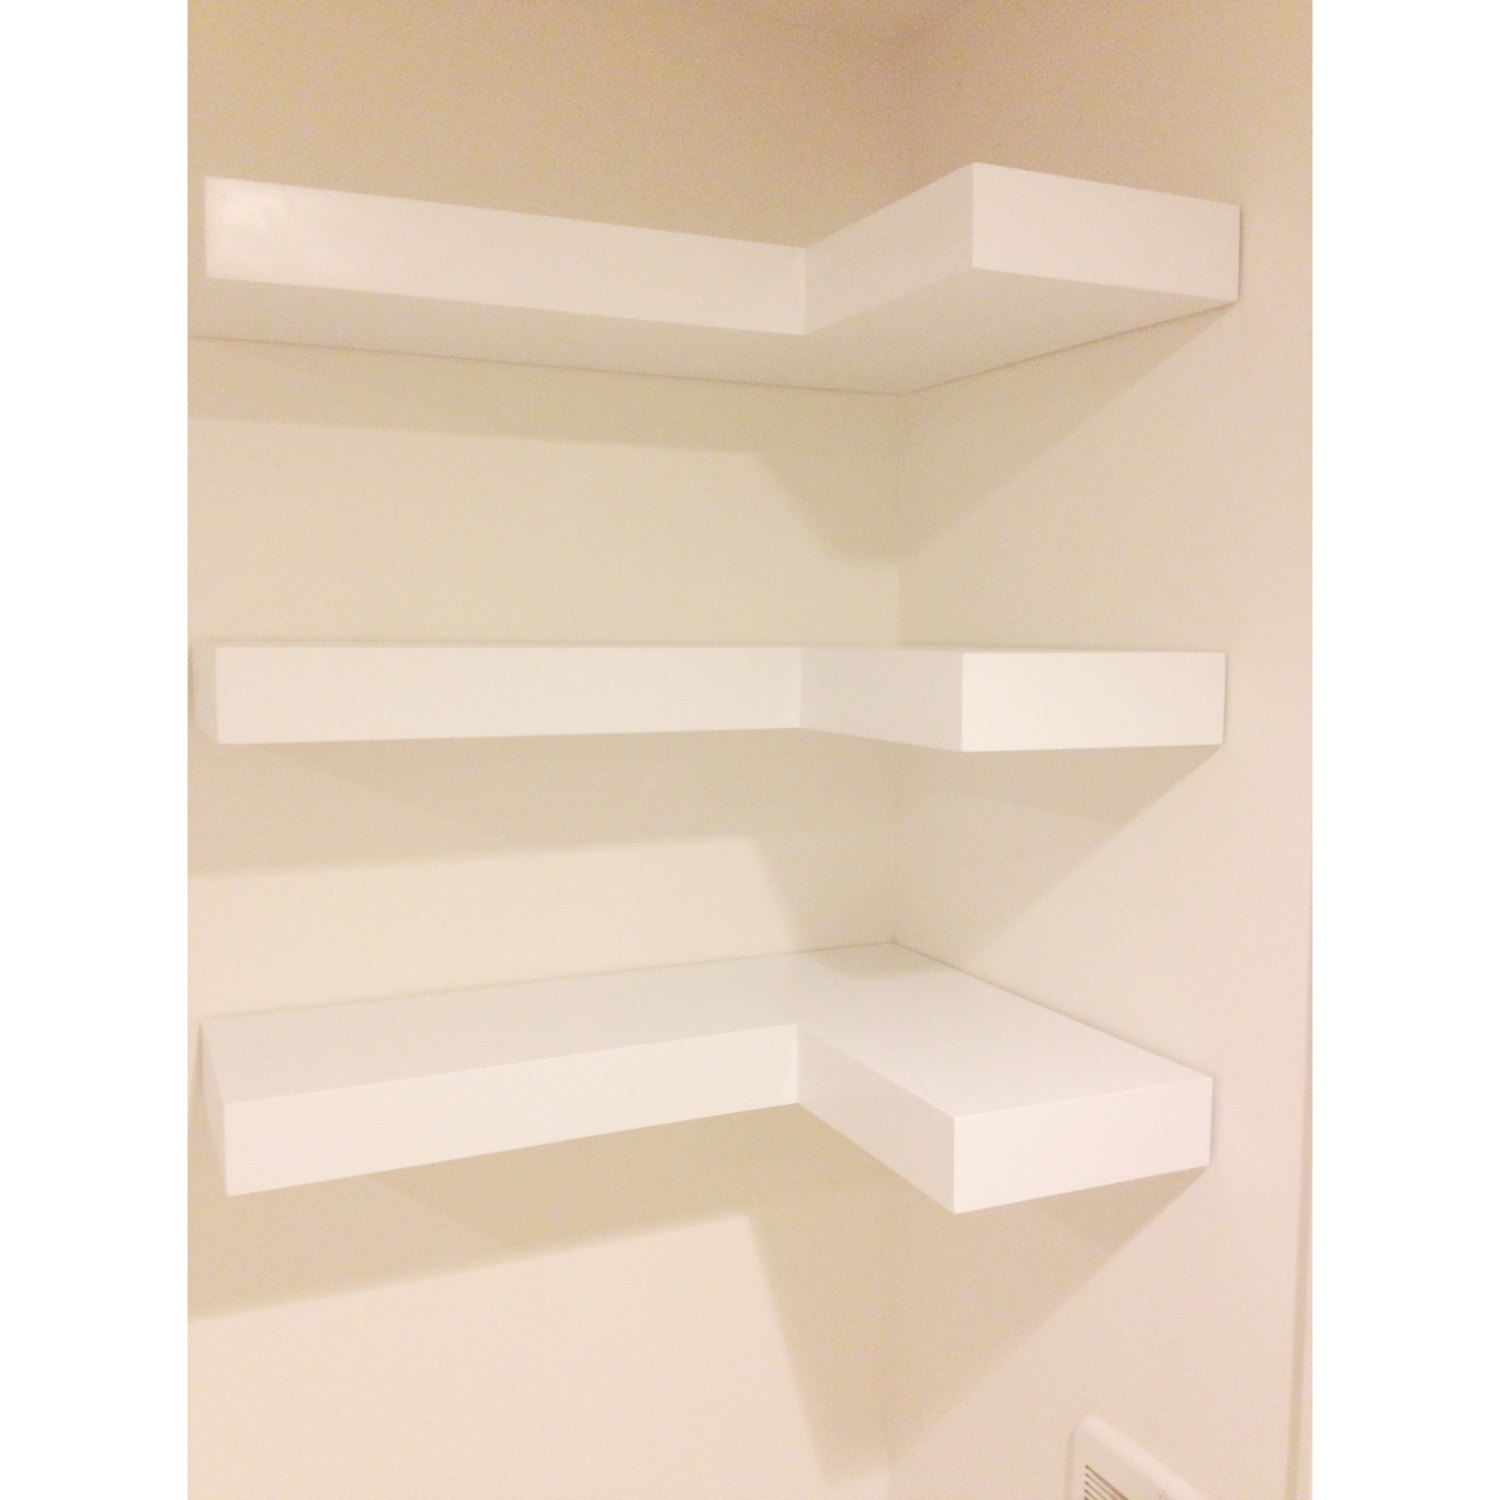 corner shelf shower ikea wall shelves black zigzag bookshelf floating mounted with drawer wooden architecture white set three woodguycustoms wood cabinet large unit argos units